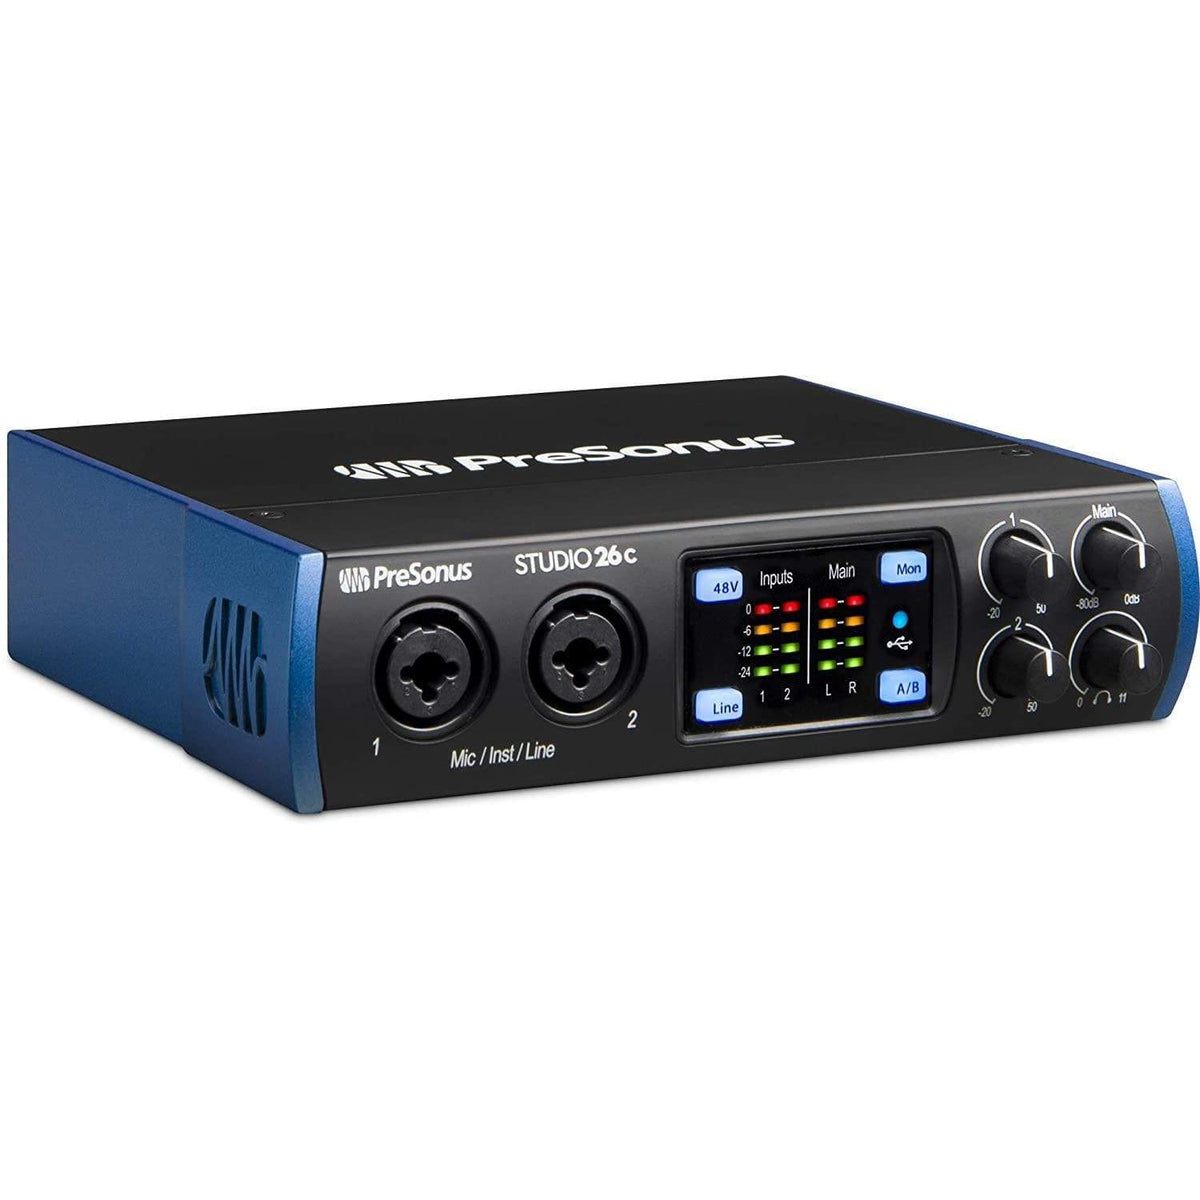 PreSonus Studio 26C Audio Interface